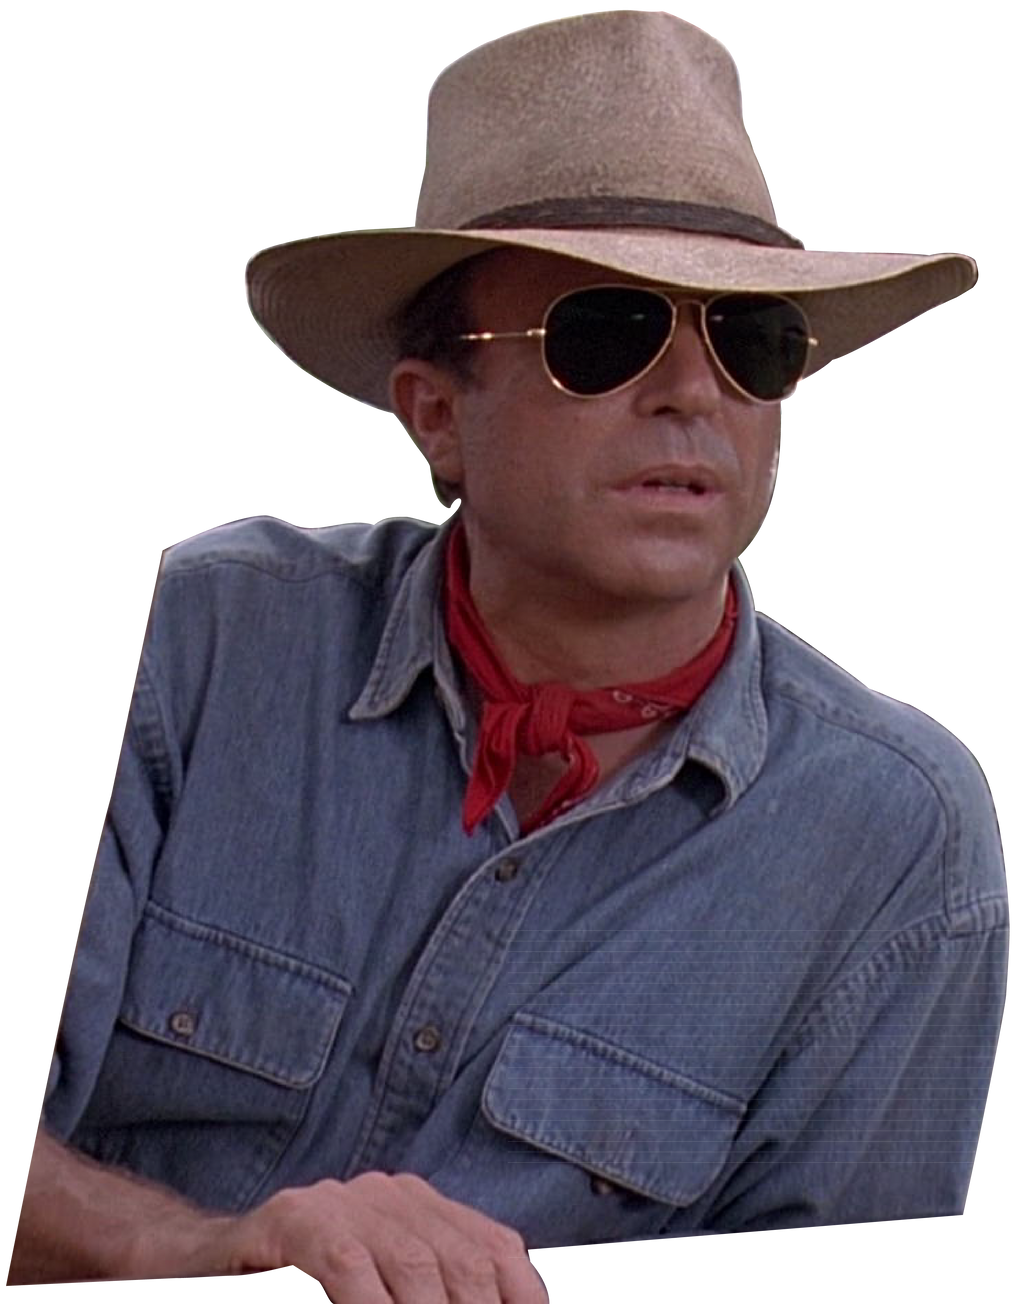 jurassic park dr grant in car looking png by ent2pri9se clipart sunglasses black and white clipart sunglasses with palm trees